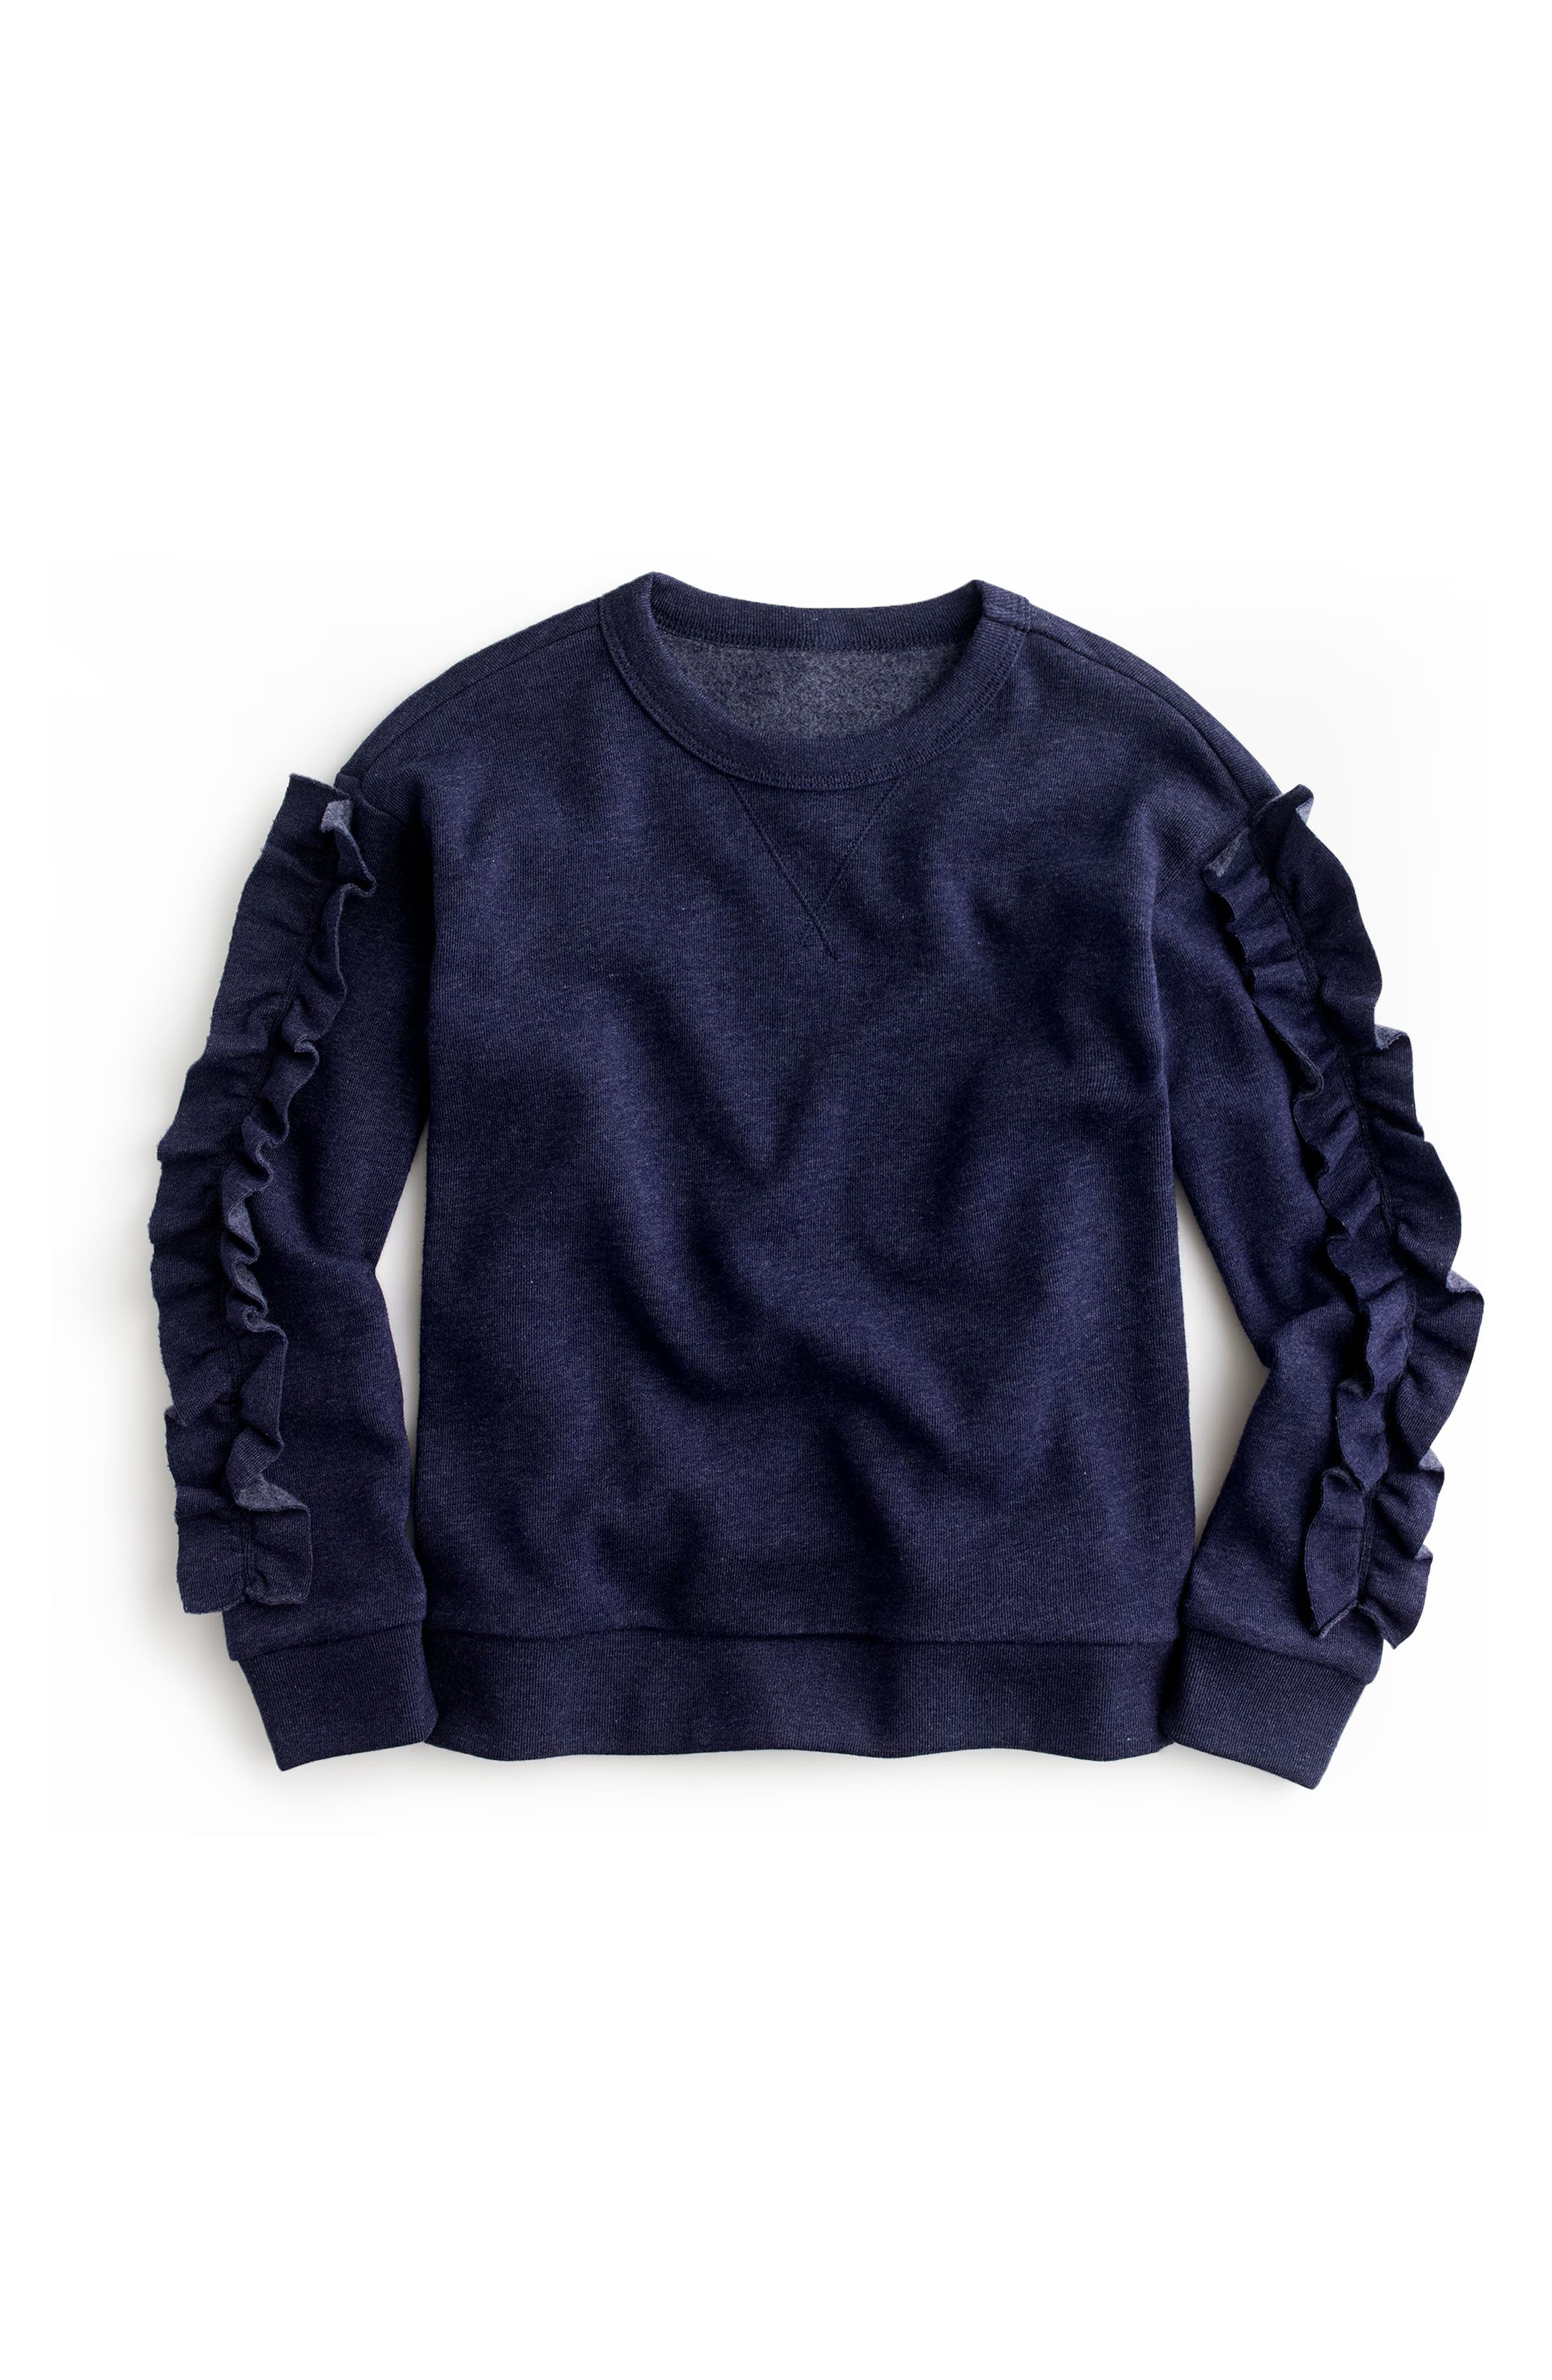 Ruffle Trim Sweatshirt,                         Main,                         color, Dark Ink